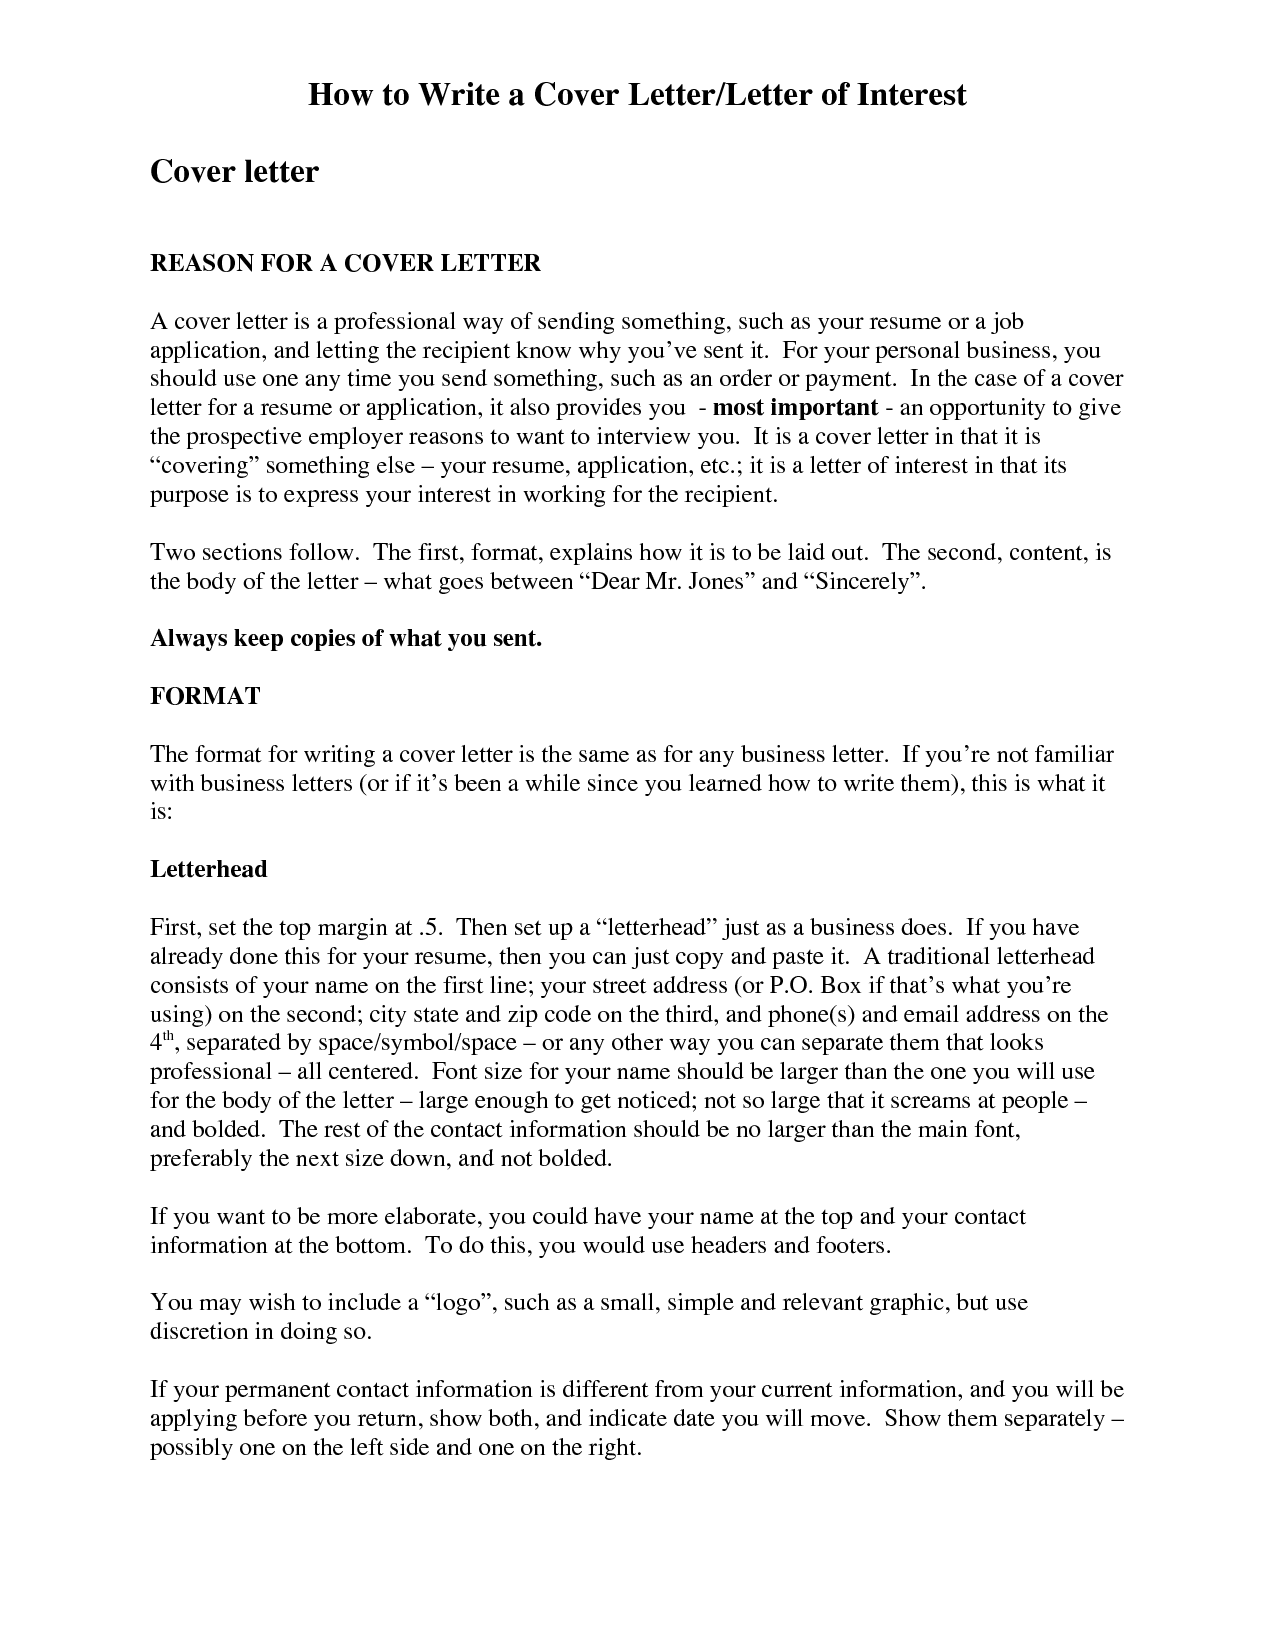 Letters of interest examples for a job letter of intent for How to write a cover letter for supervisor position